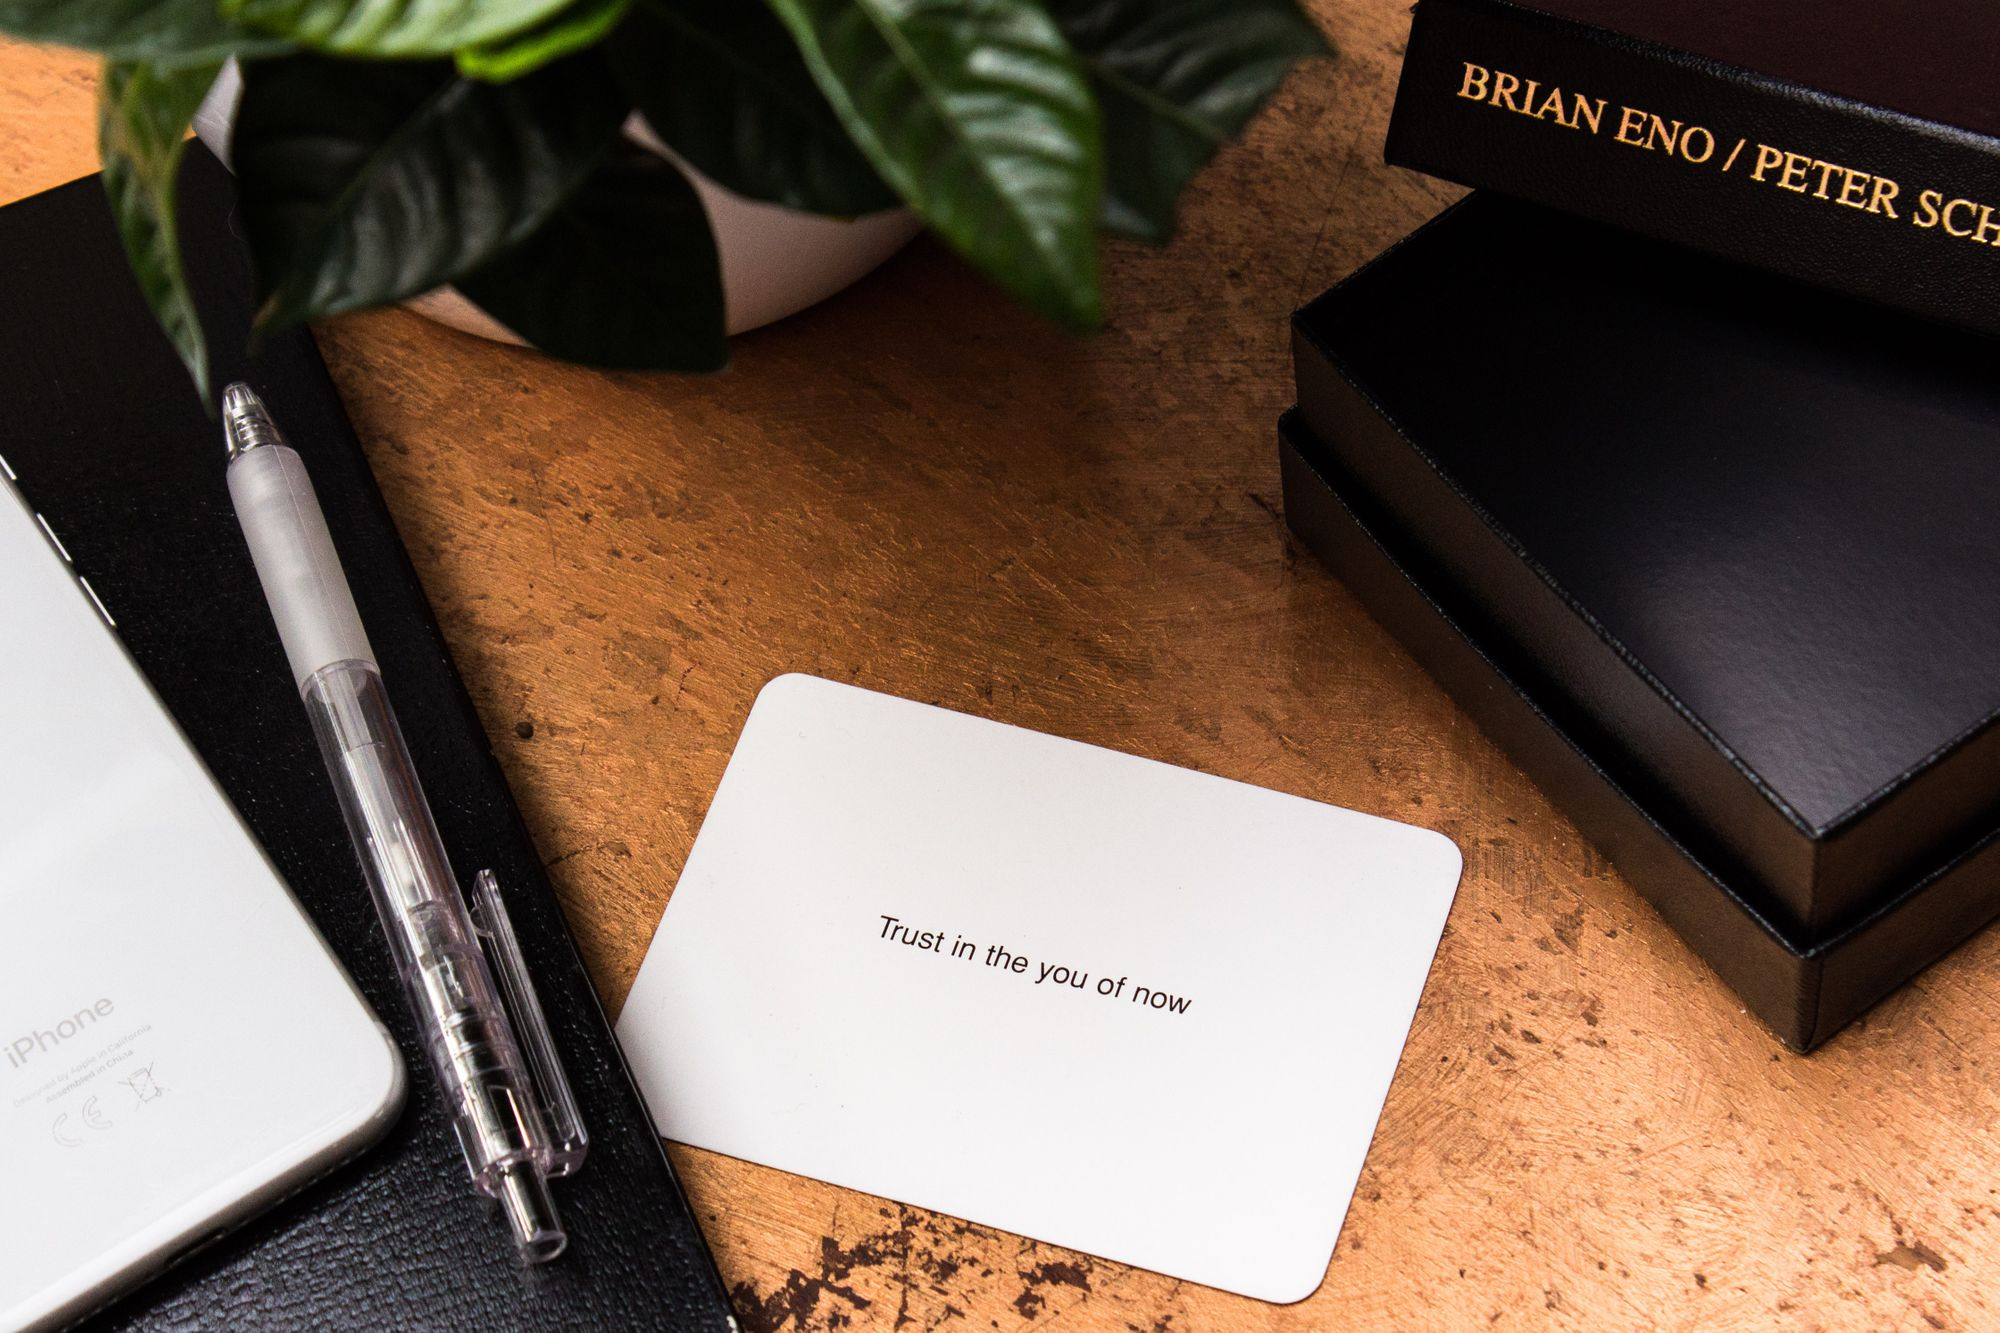 Yoga business cards: Where to make them & 10+ ideas to stand out